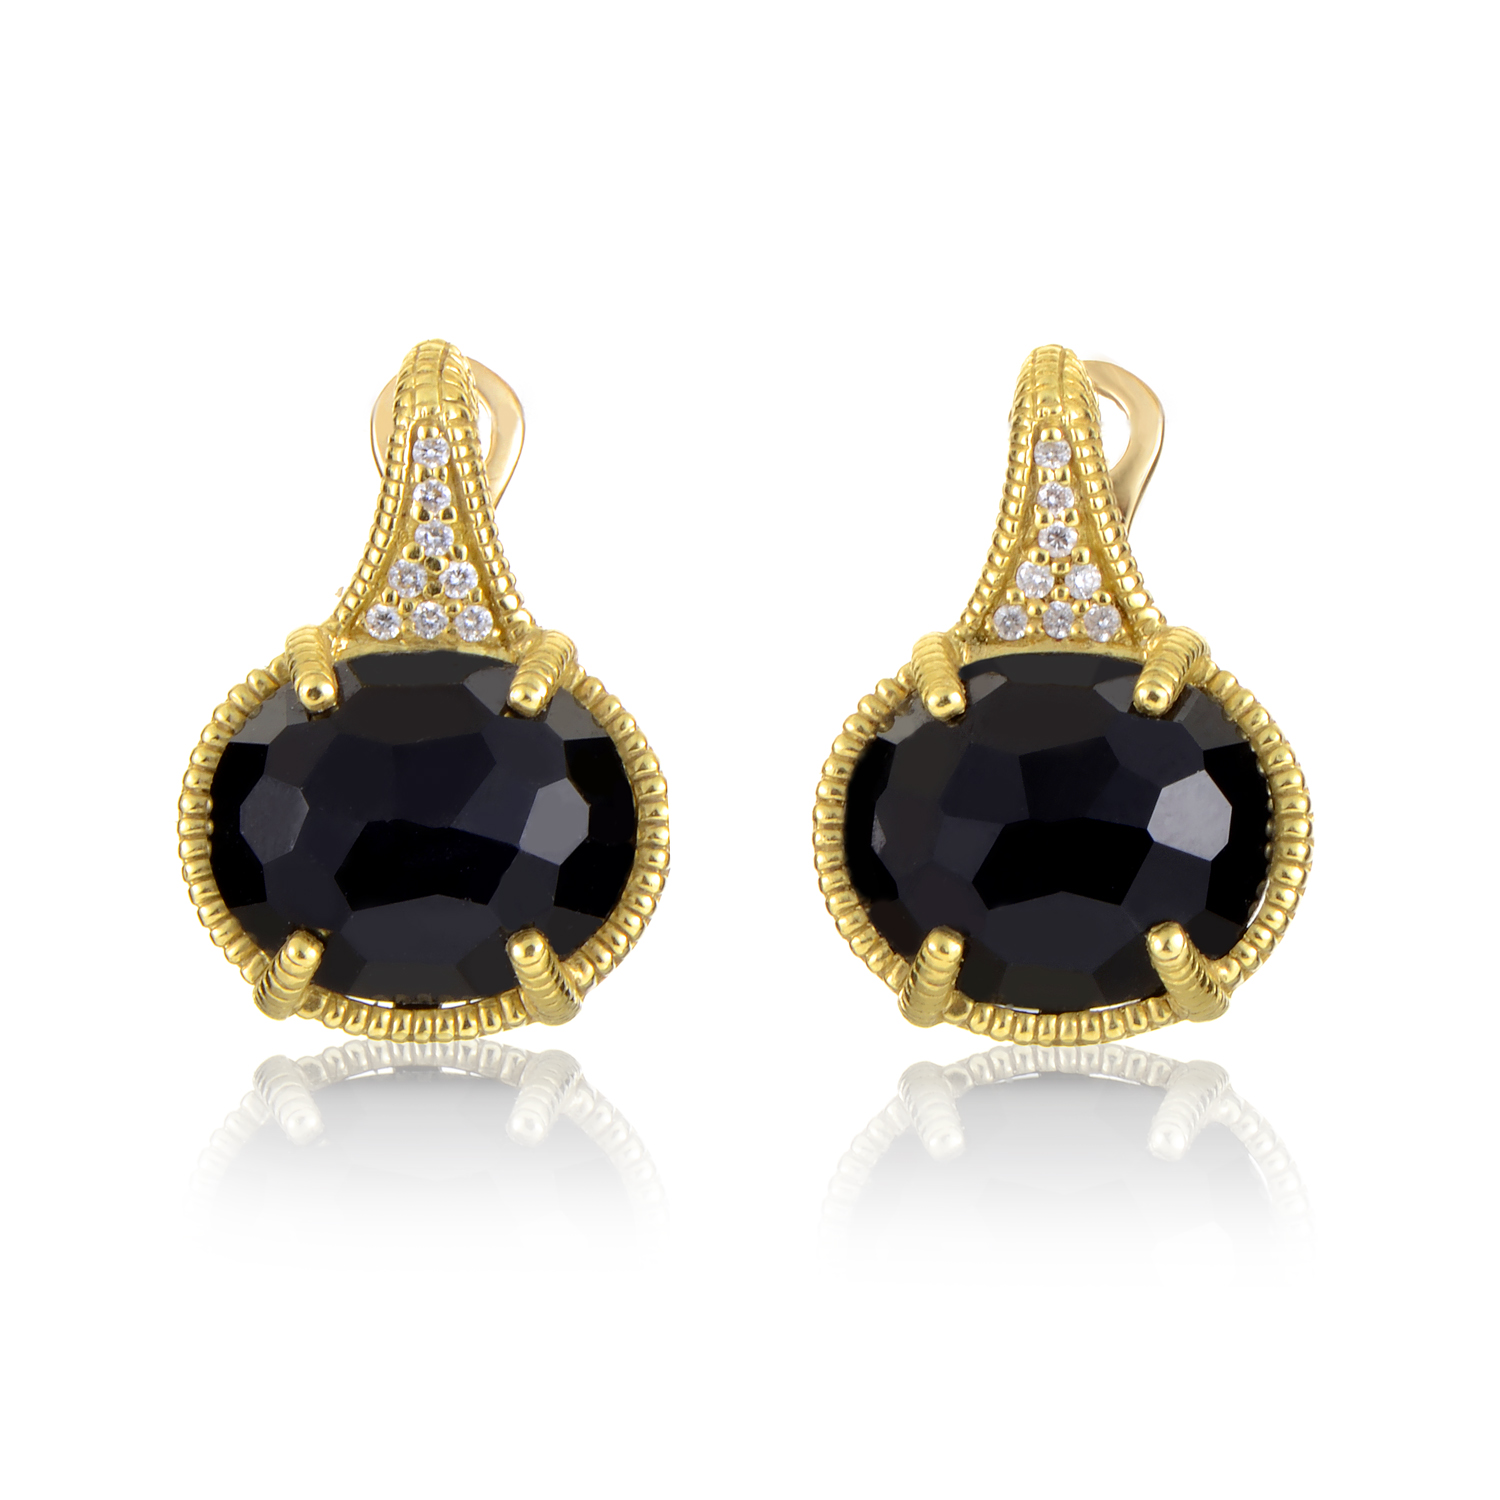 18K Yellow Gold Diamond & Smokey Quartz Earrings